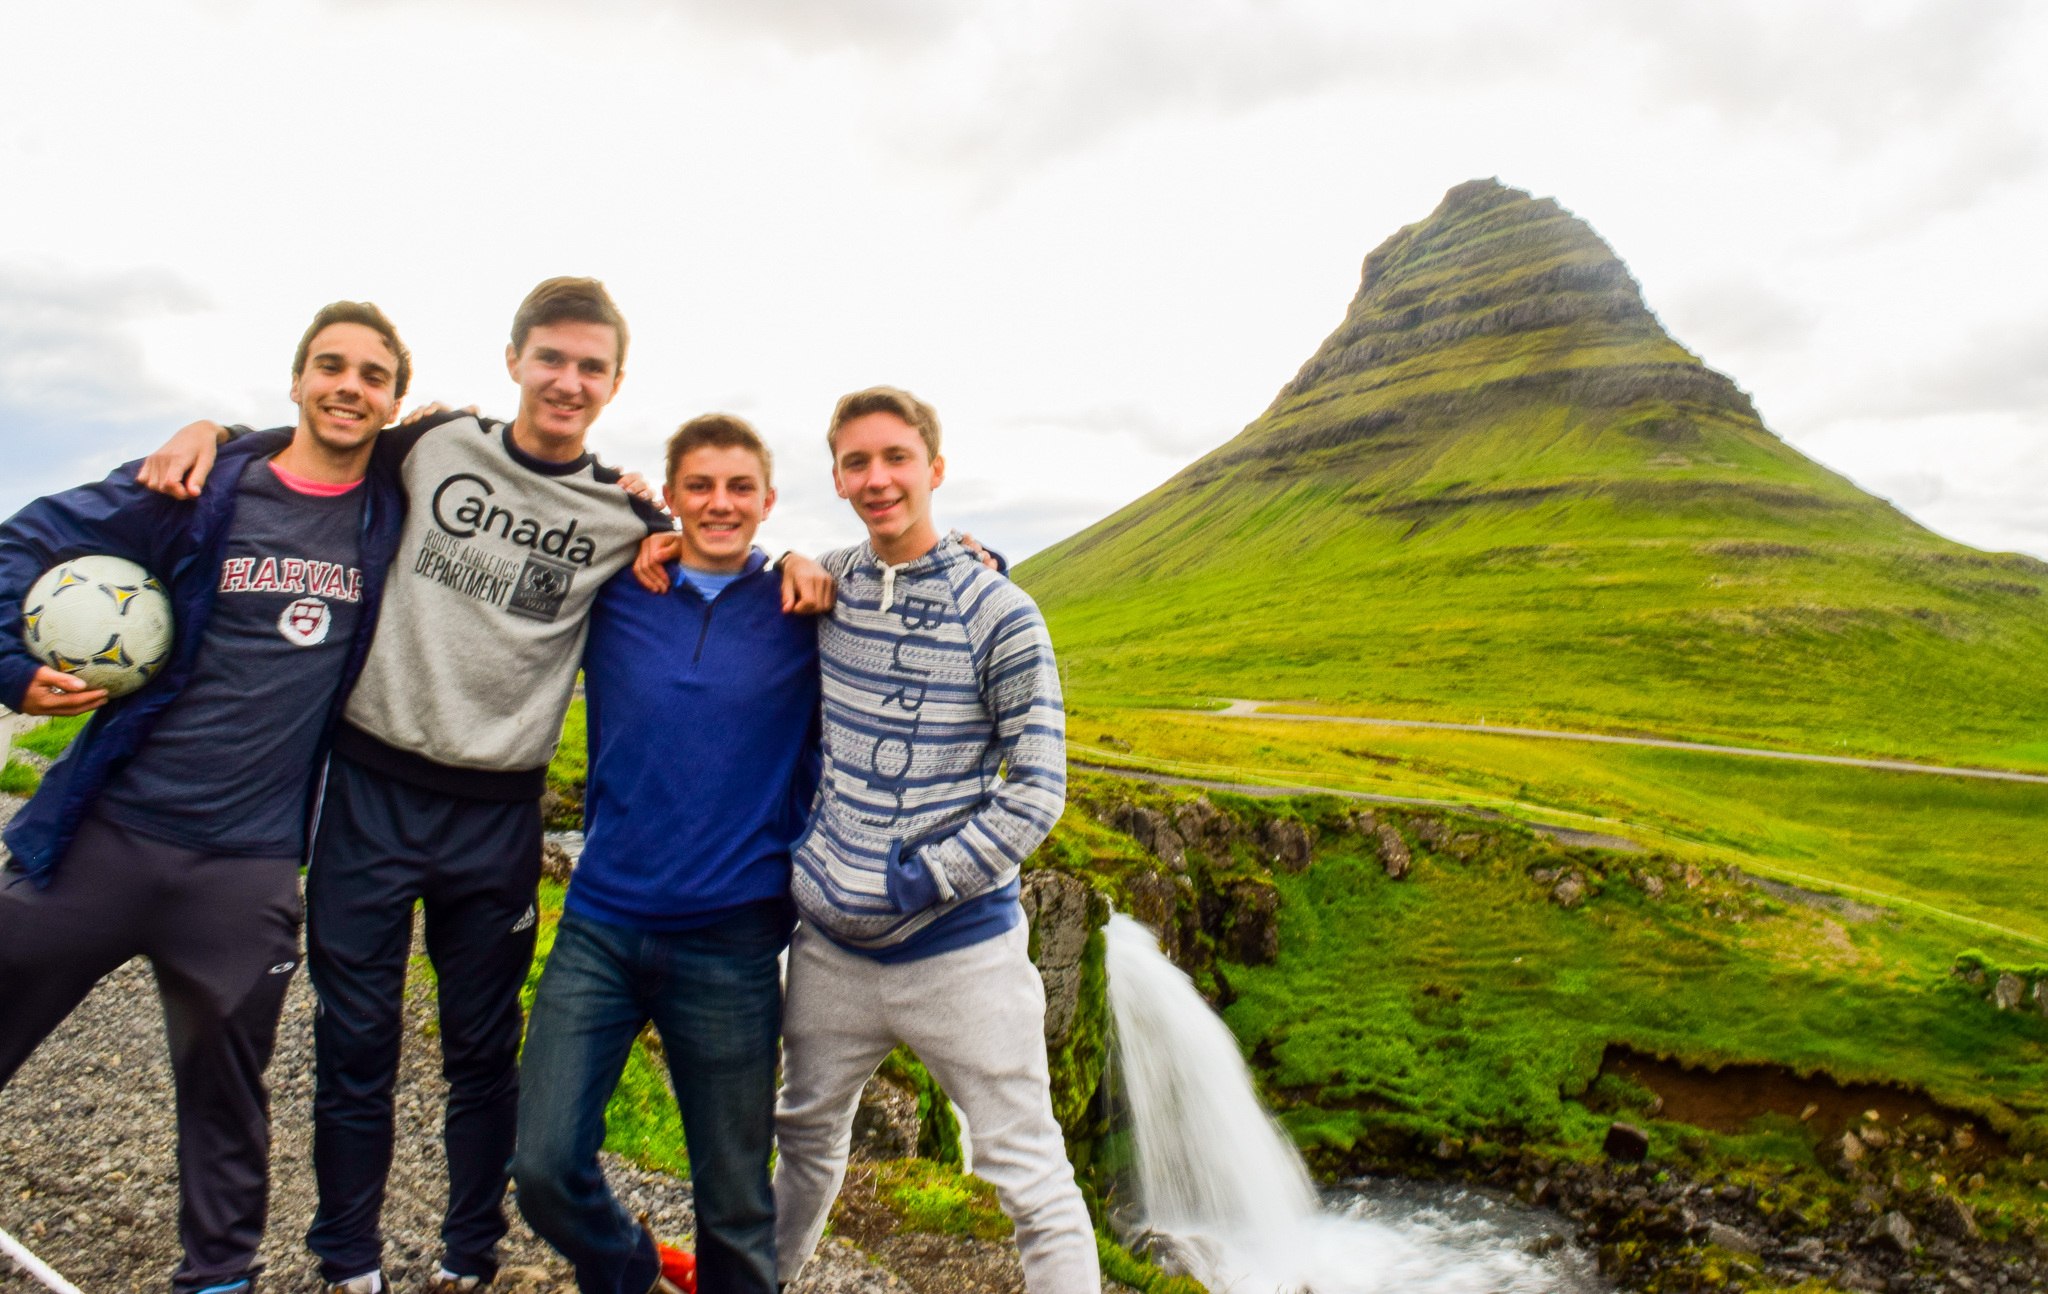 Summer Program - Travel And Tourism | Travel For Teens: Europe for Older Teens - Iceland Adventure